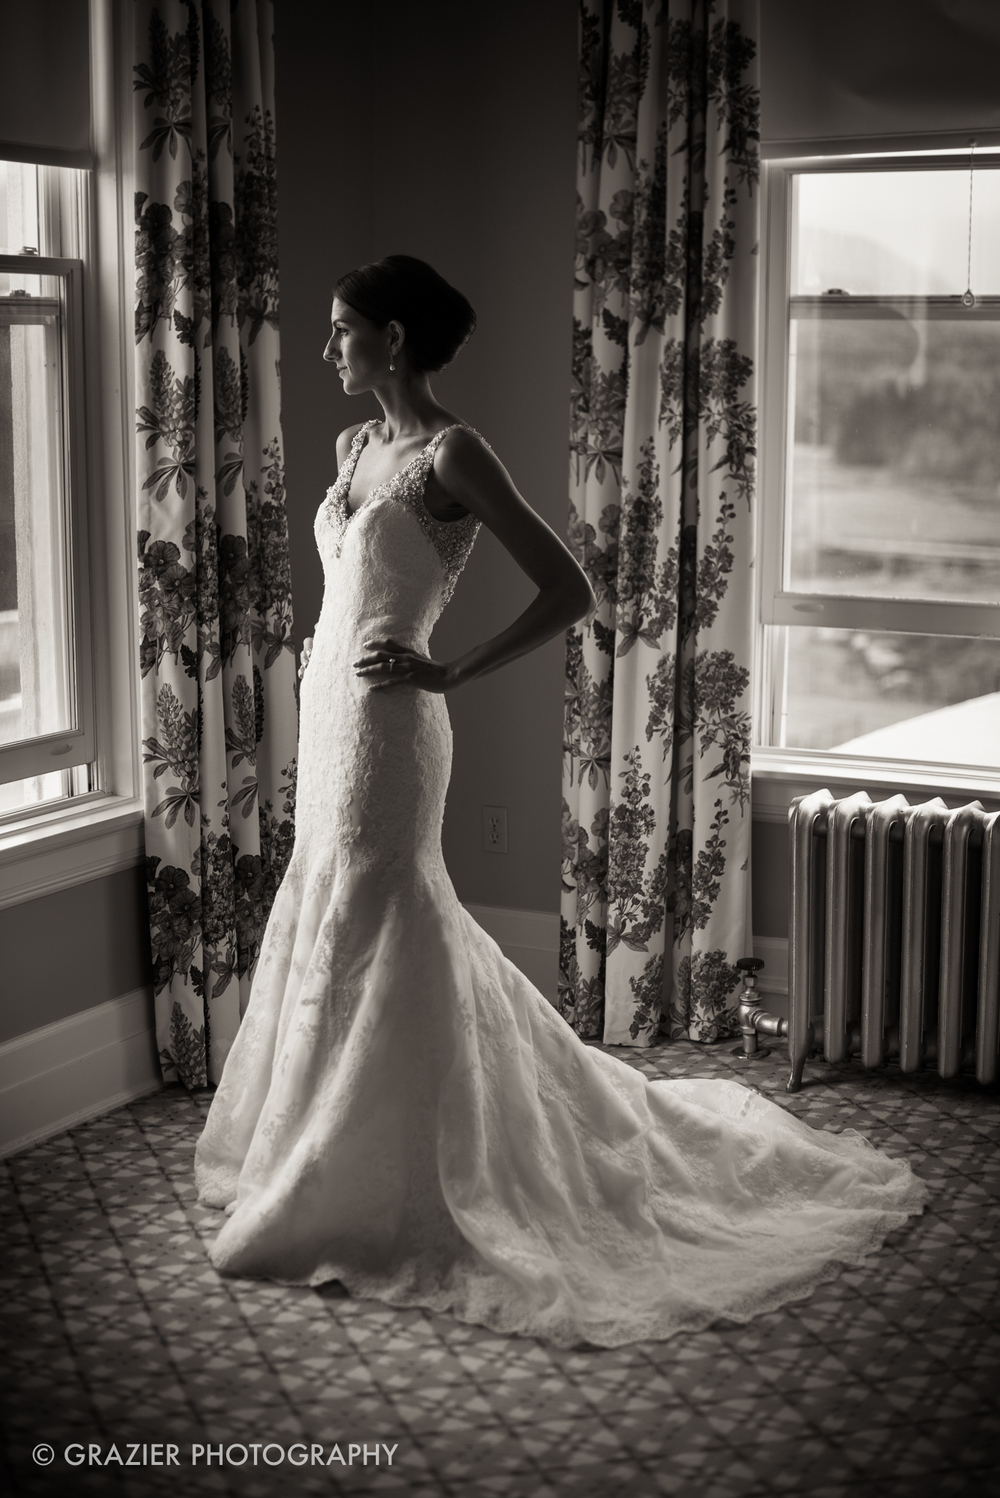 Grazier_Photography_Mount_Washington_Wedding_151017_116-2.jpg